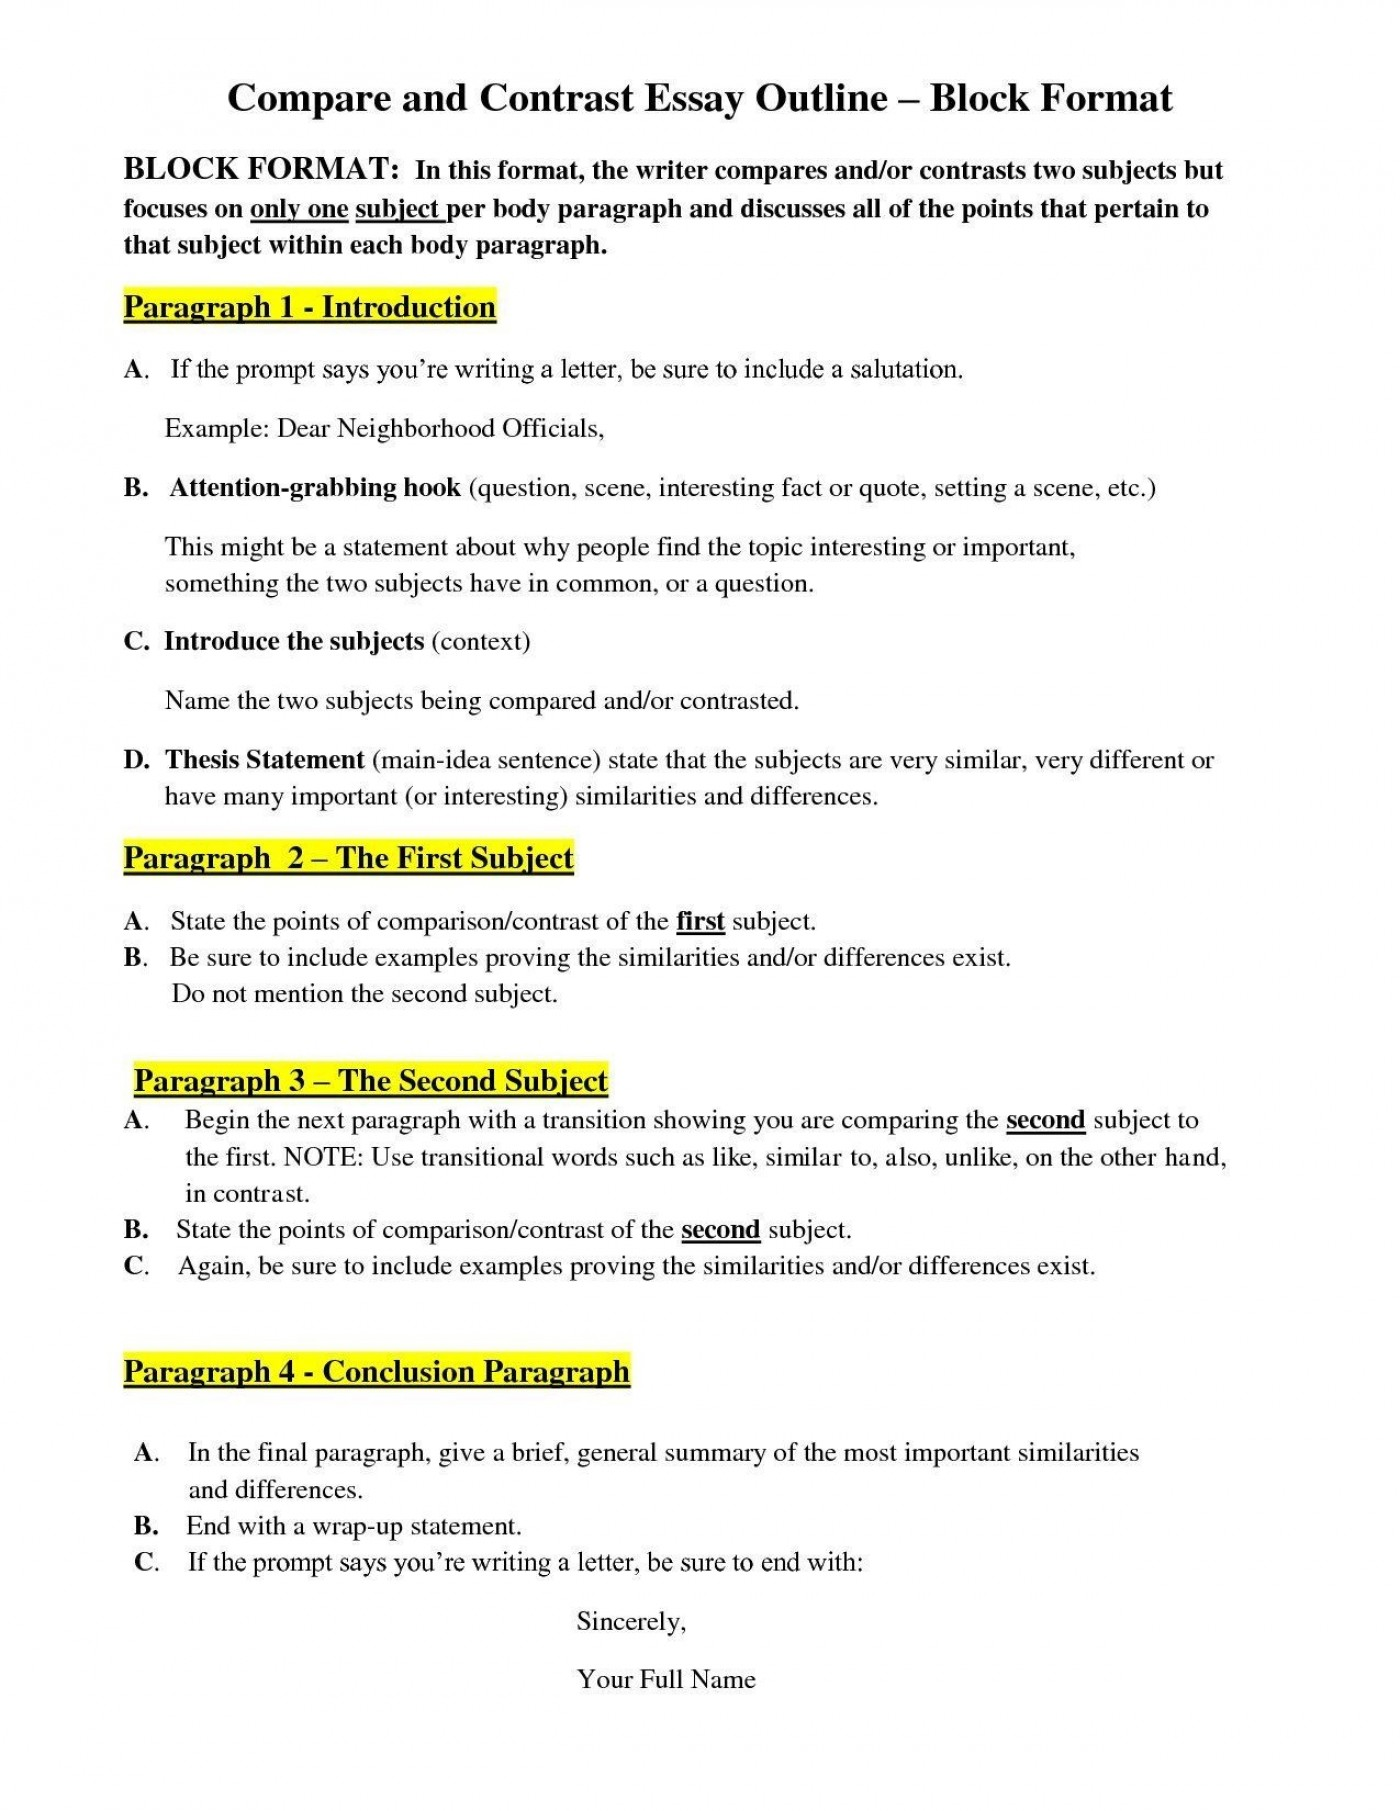 014 Essay Examplempare Andntrastmparison Best Examples Of Scenario In 6th Grade An Goo 3rd Food 5th Middle School Block Format Pdf High 4th Vs Striking Compare And Contrast Example Outline For 8th 1400